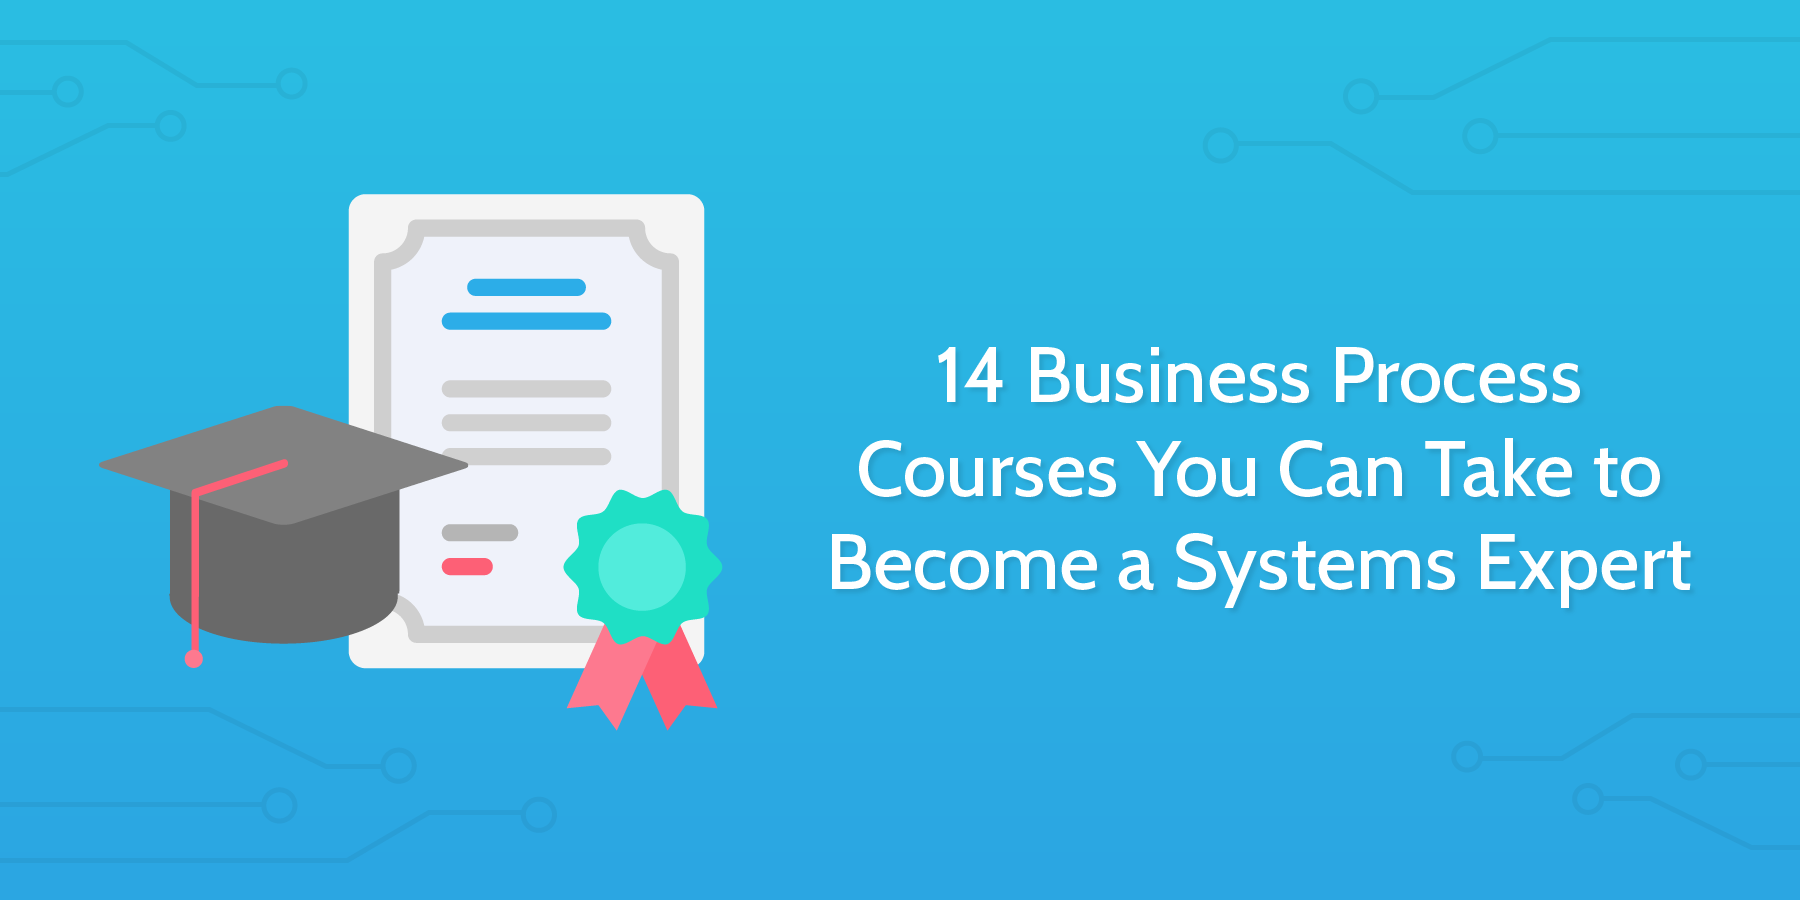 14 BPM & Six Sigma Courses You Can Take to Become a Systems